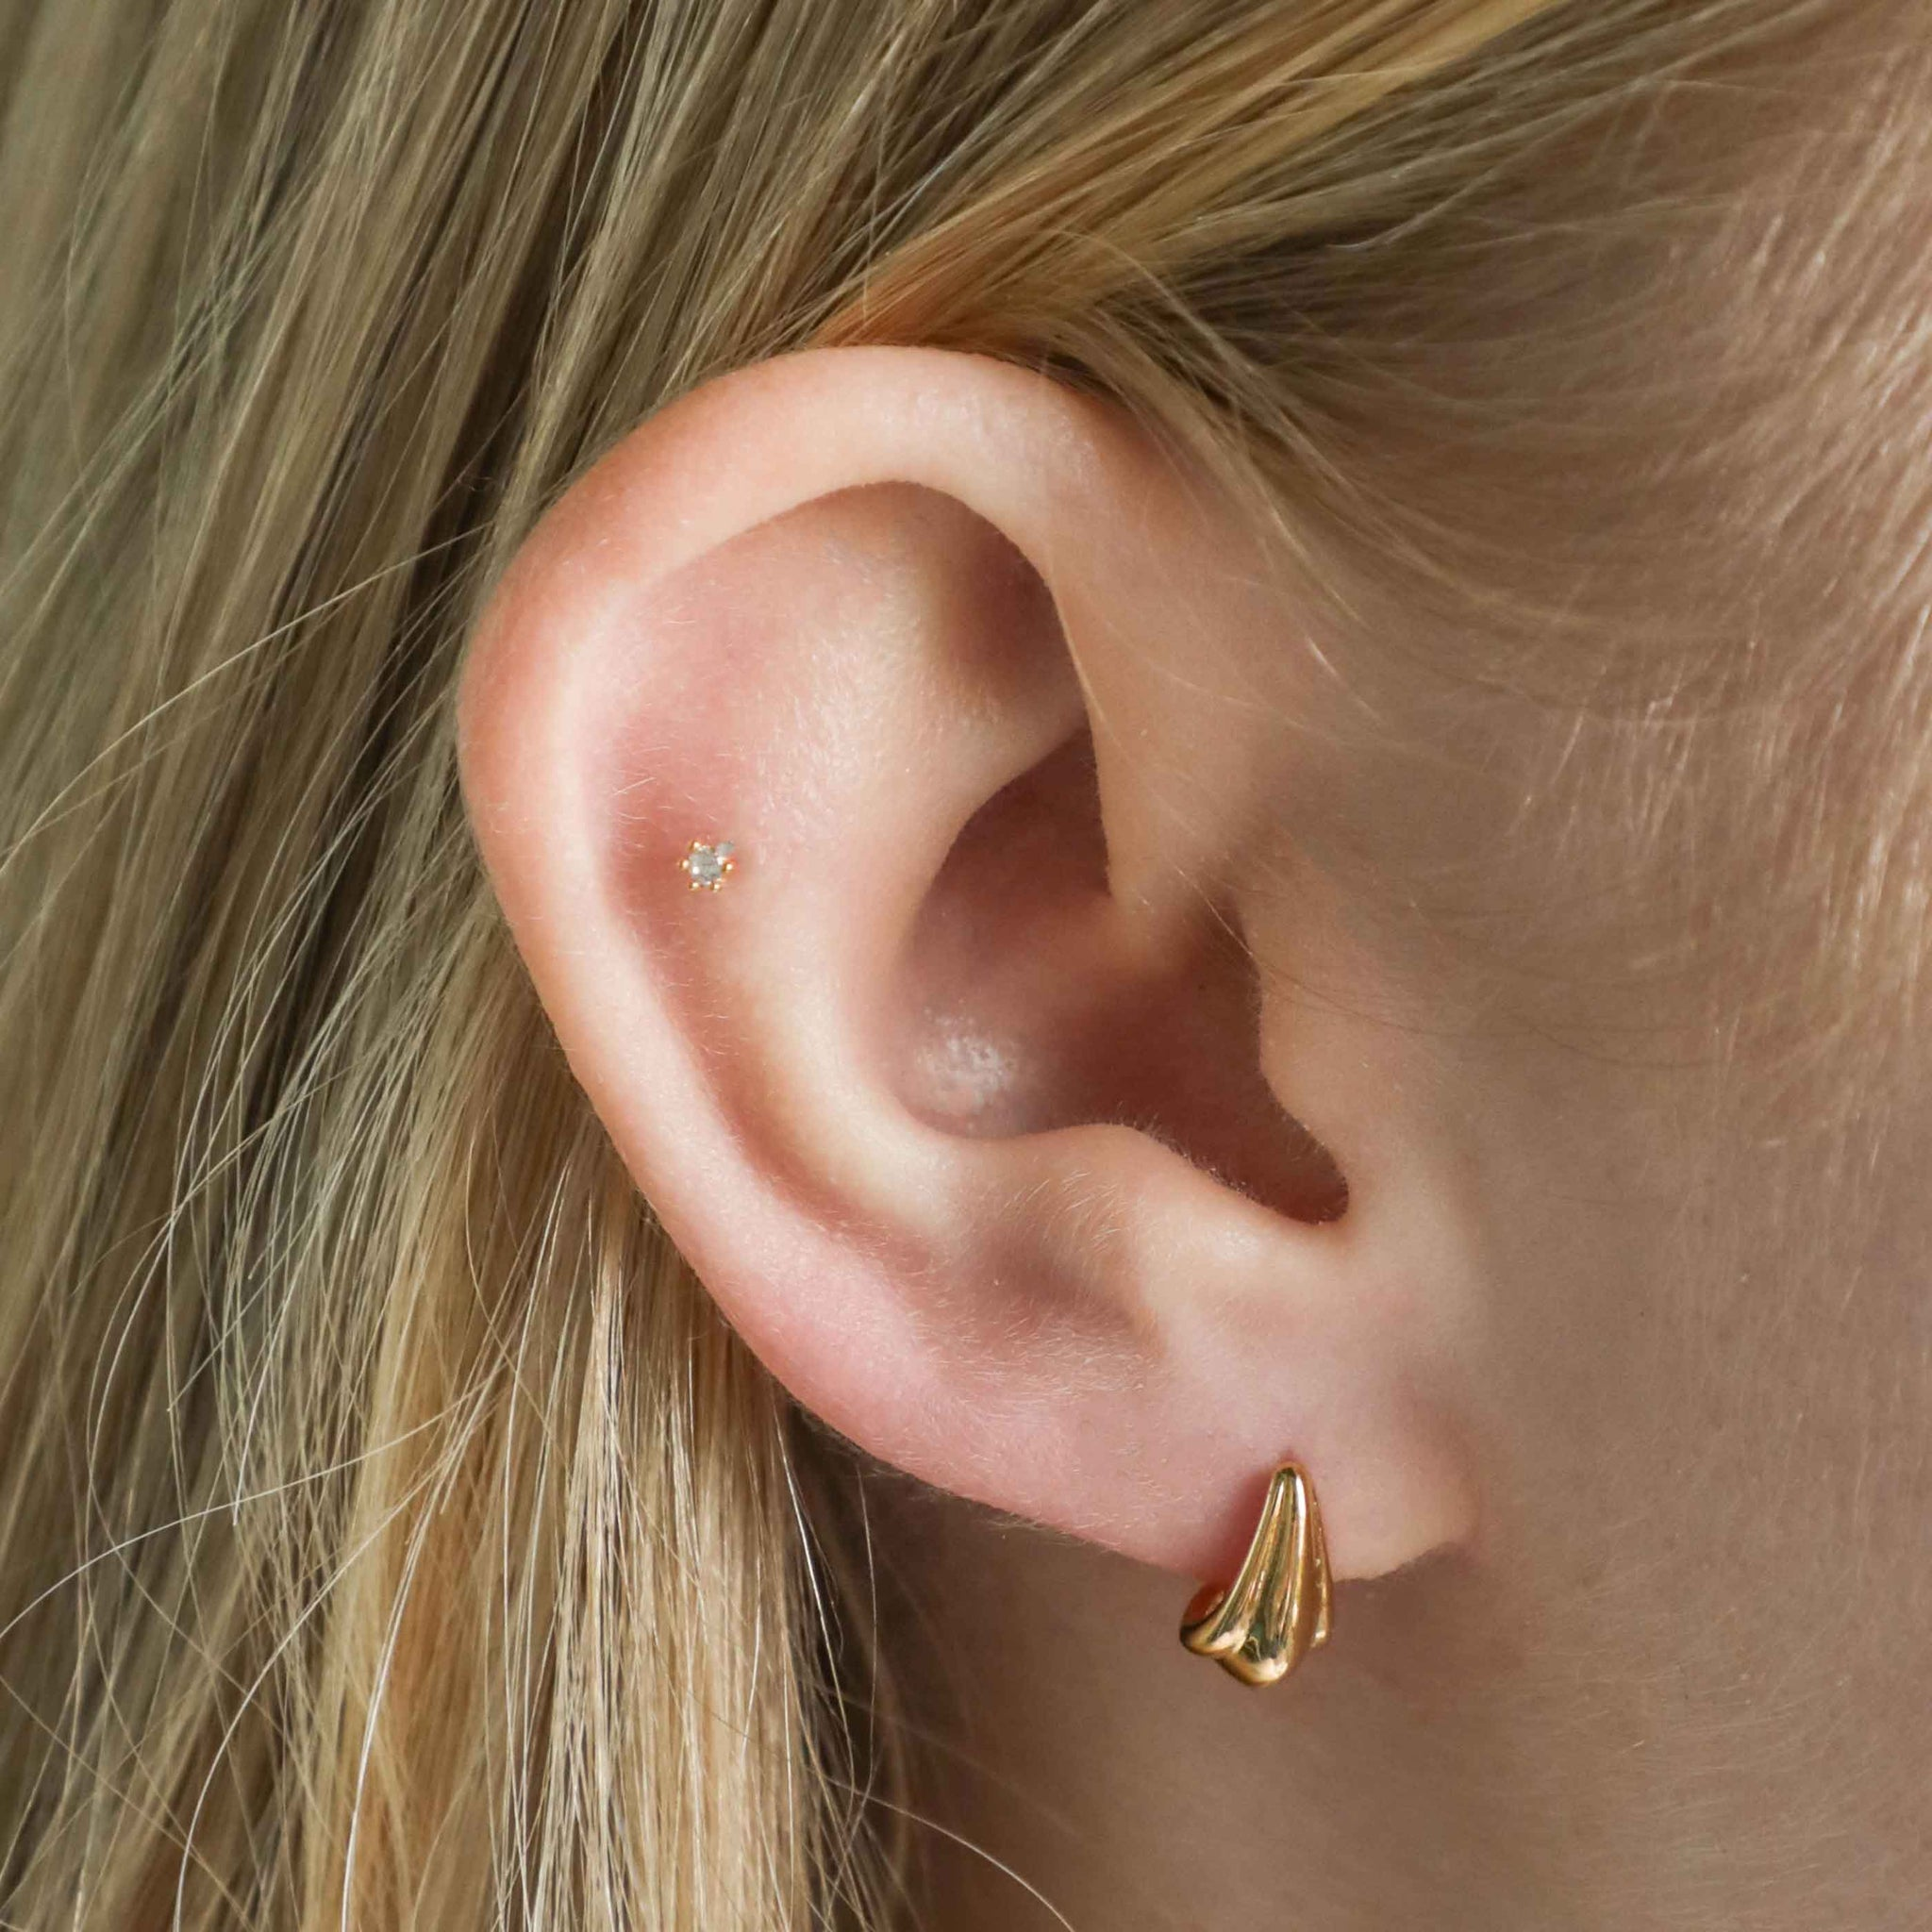 Petal Stud Earrings in Gold worn in first lobe piercing